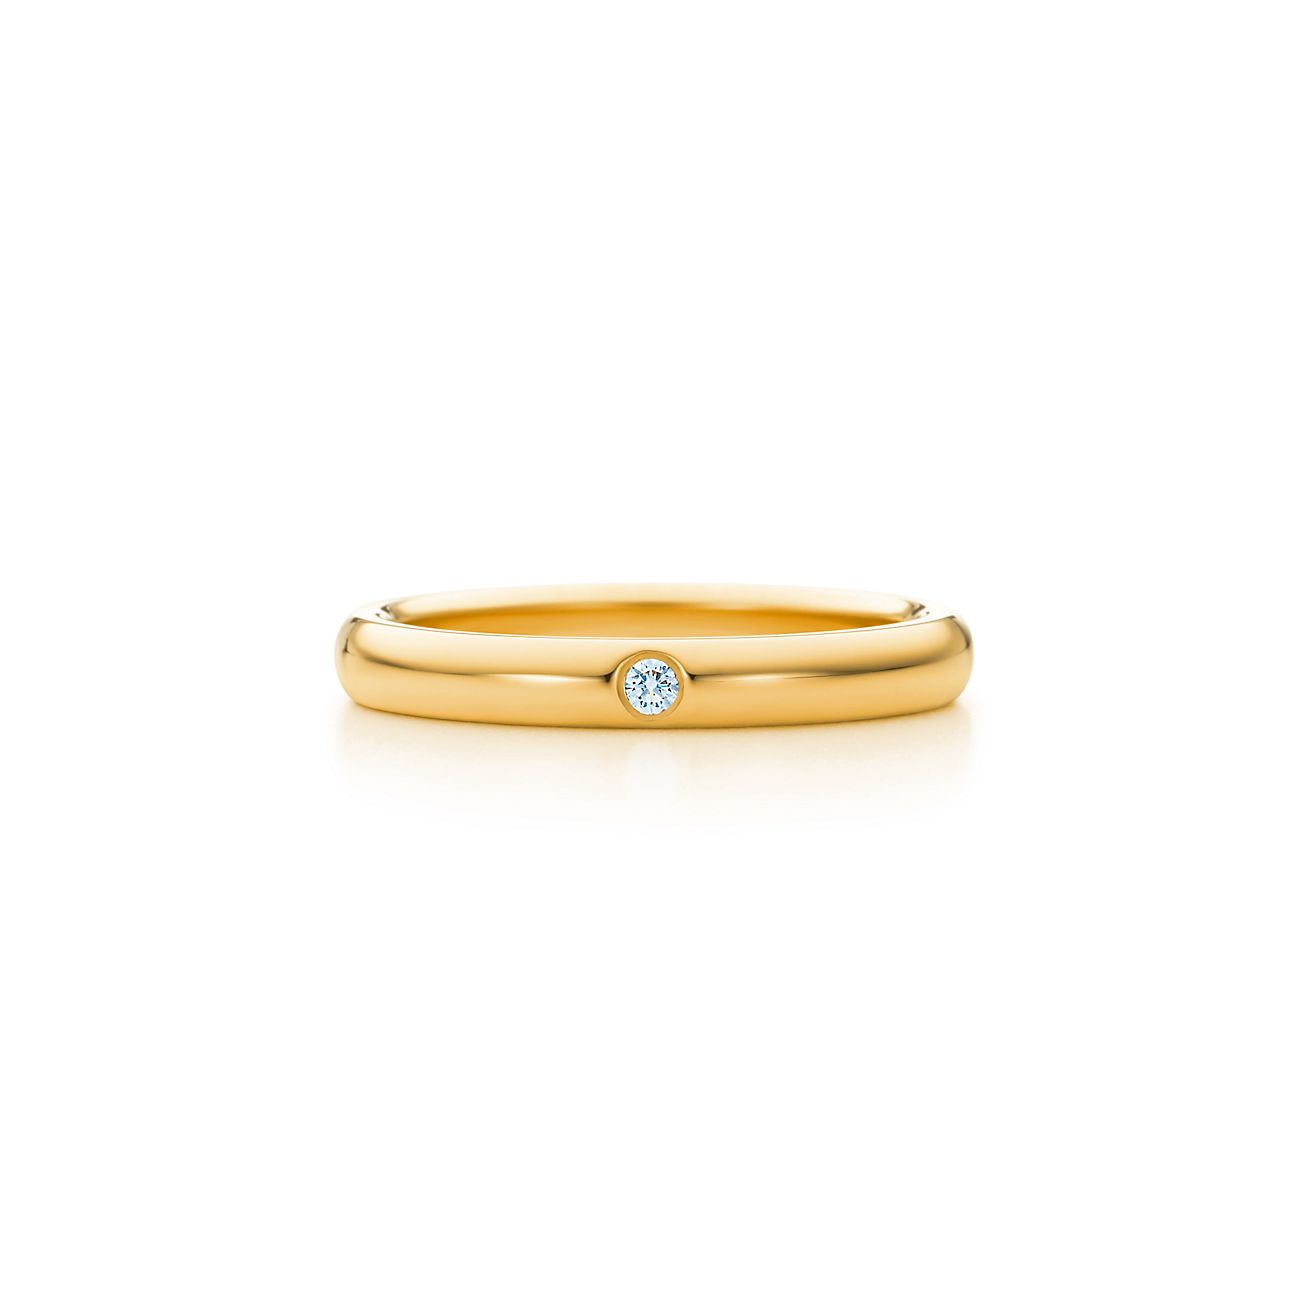 Elsa Peretti wedding band ring with diamonds in 18k gold - Size 4 1/2 Tiffany & Co. EVEUc